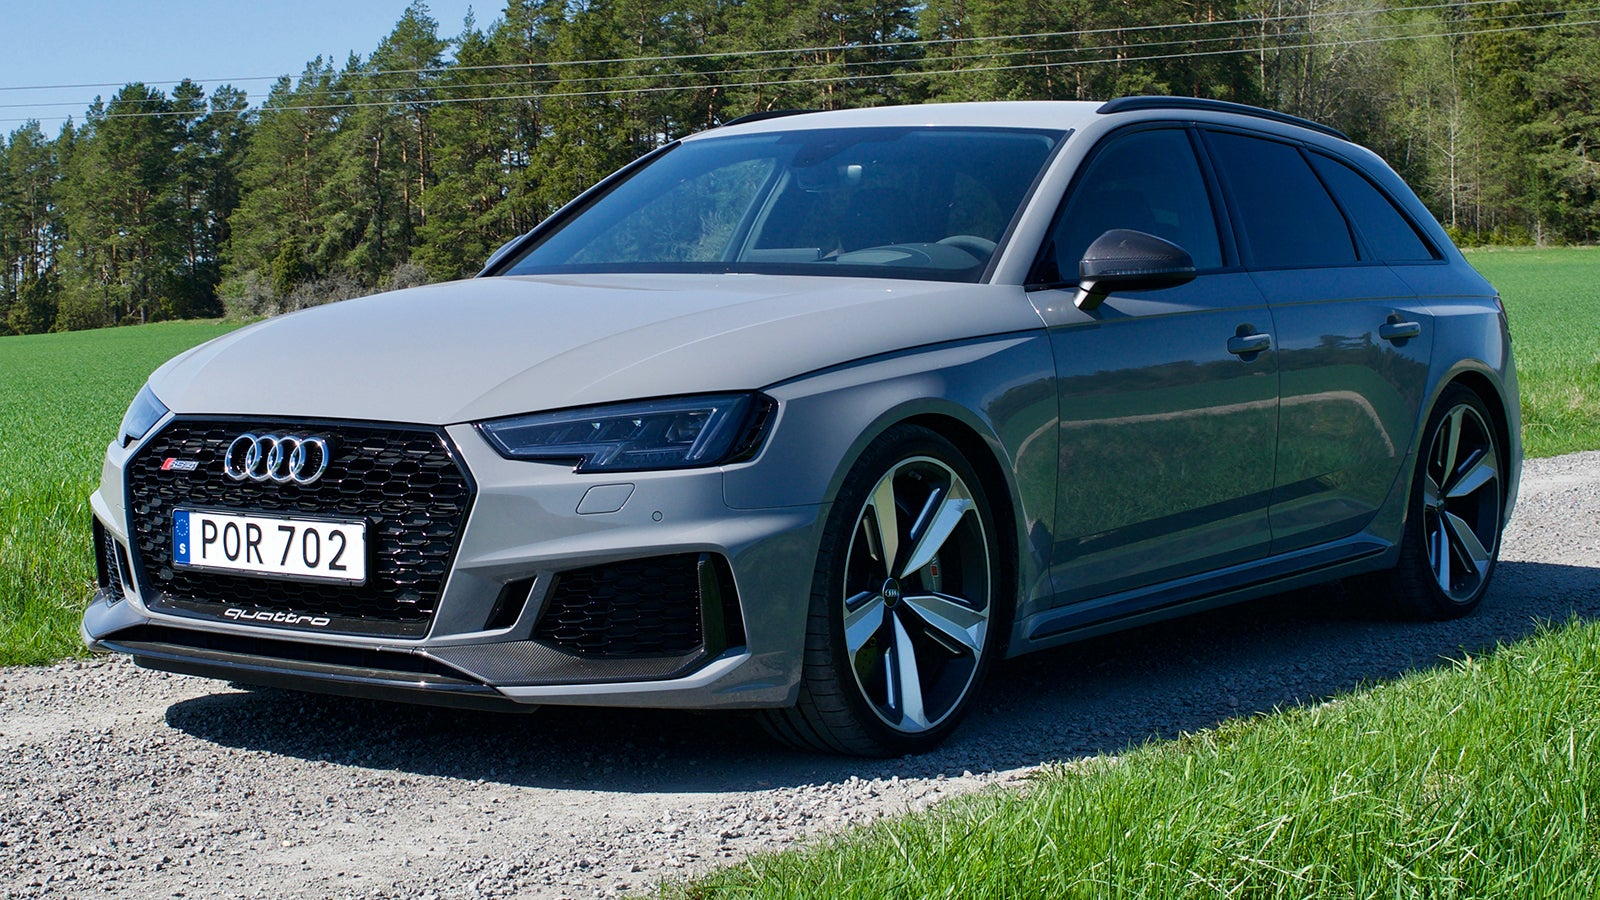 The 2018 Audi Rs4 Avant Is The Clean Cut Performance Wagon Of Your